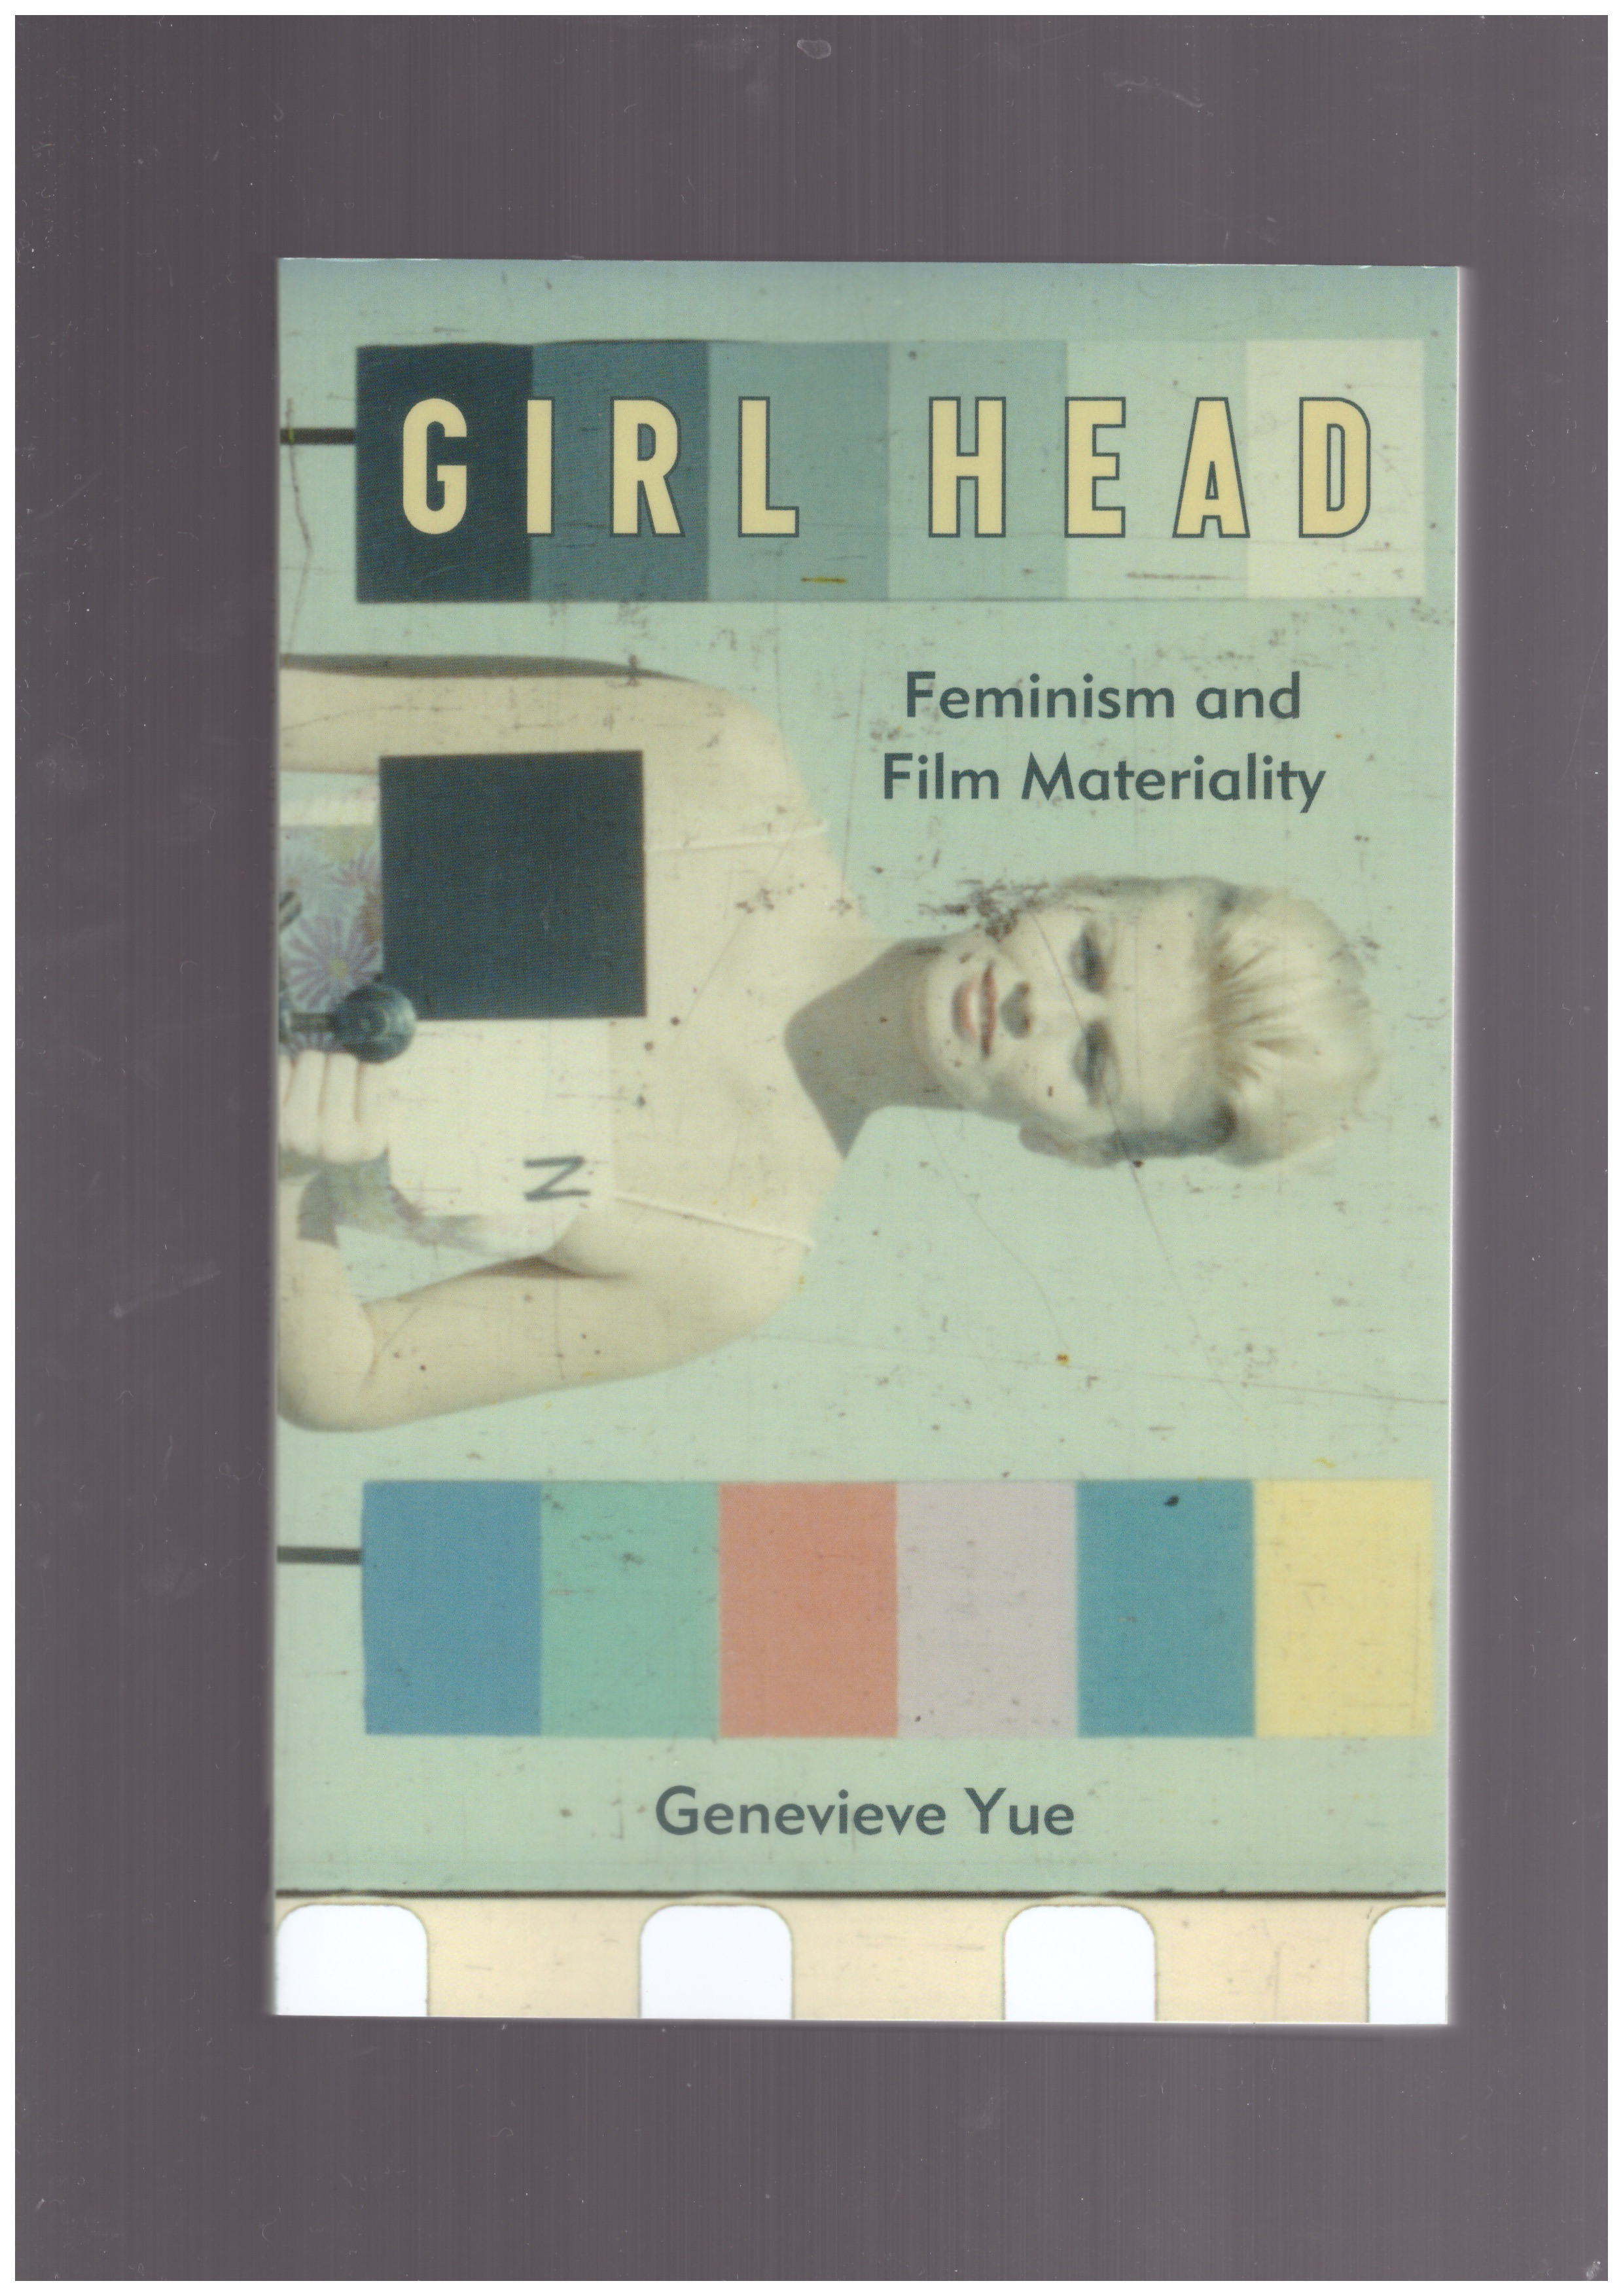 YUE, Genevieve - Girl Head. Feminism and Film Materiality